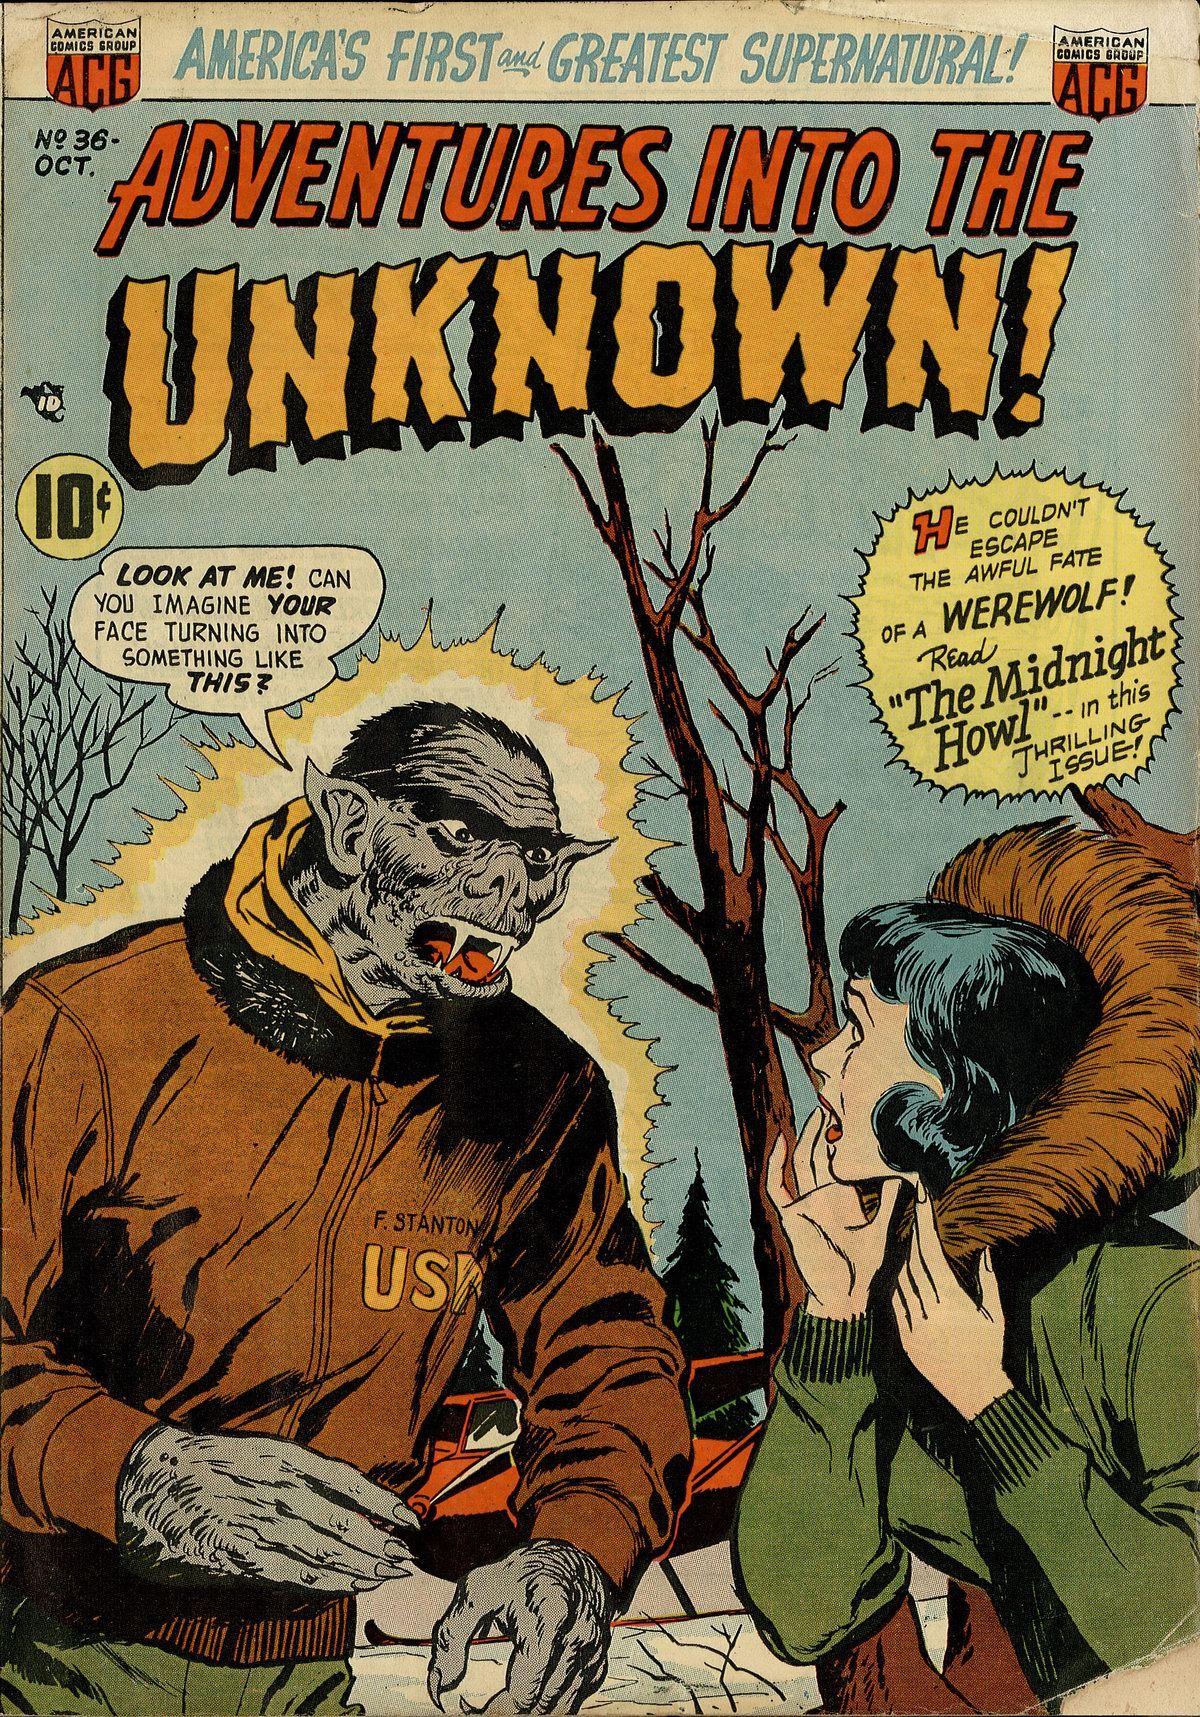 Adventures into the unknown 036 1953 scifi